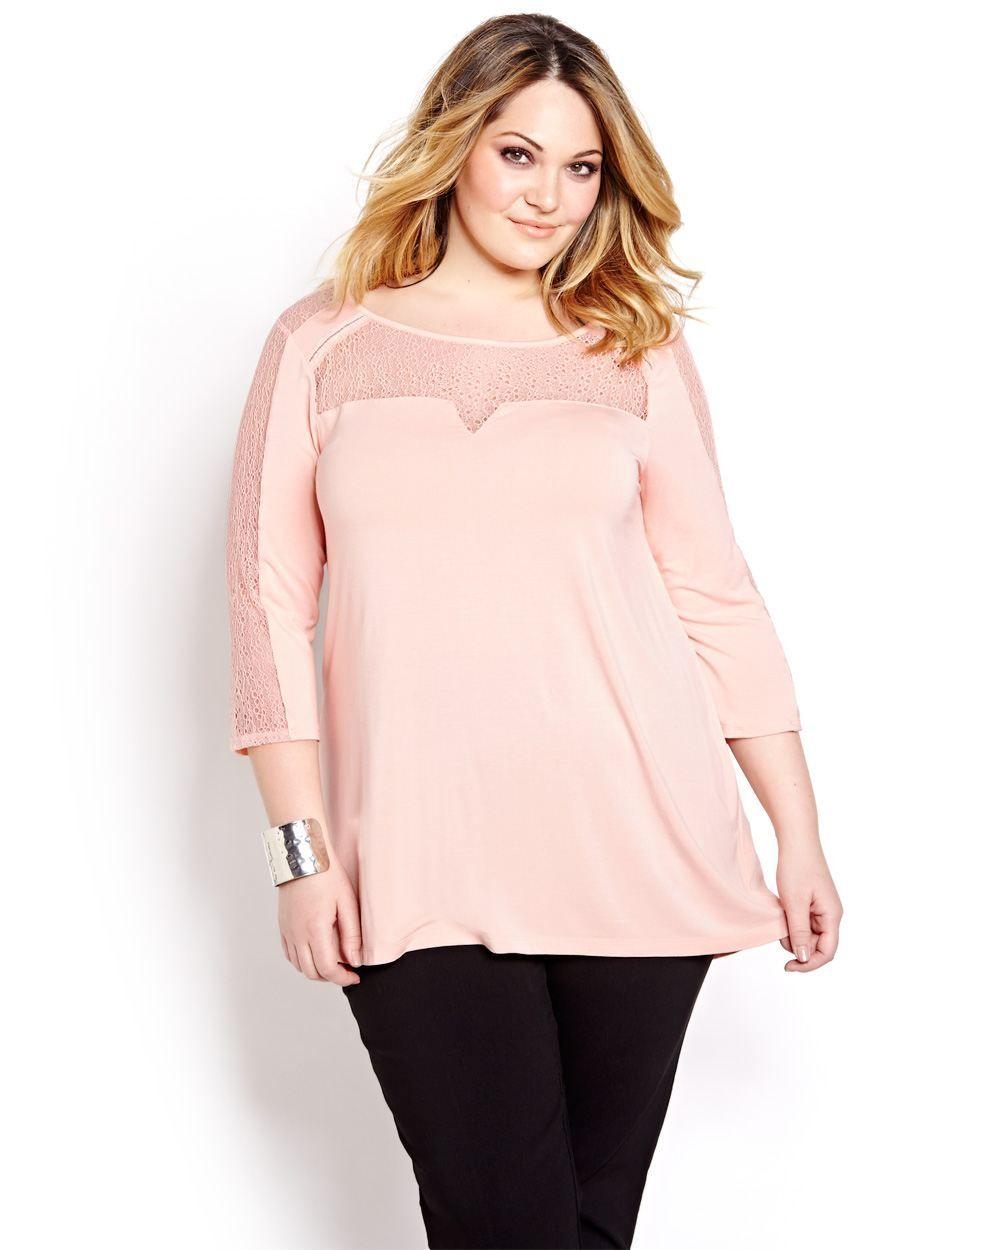 f132828983a Flowing tunic shirt with lace inserts brings a trendy touch of romantic  chic to your wardrobe. Plus size, 3/4 sleeves, lace inserts at upper body  and ...